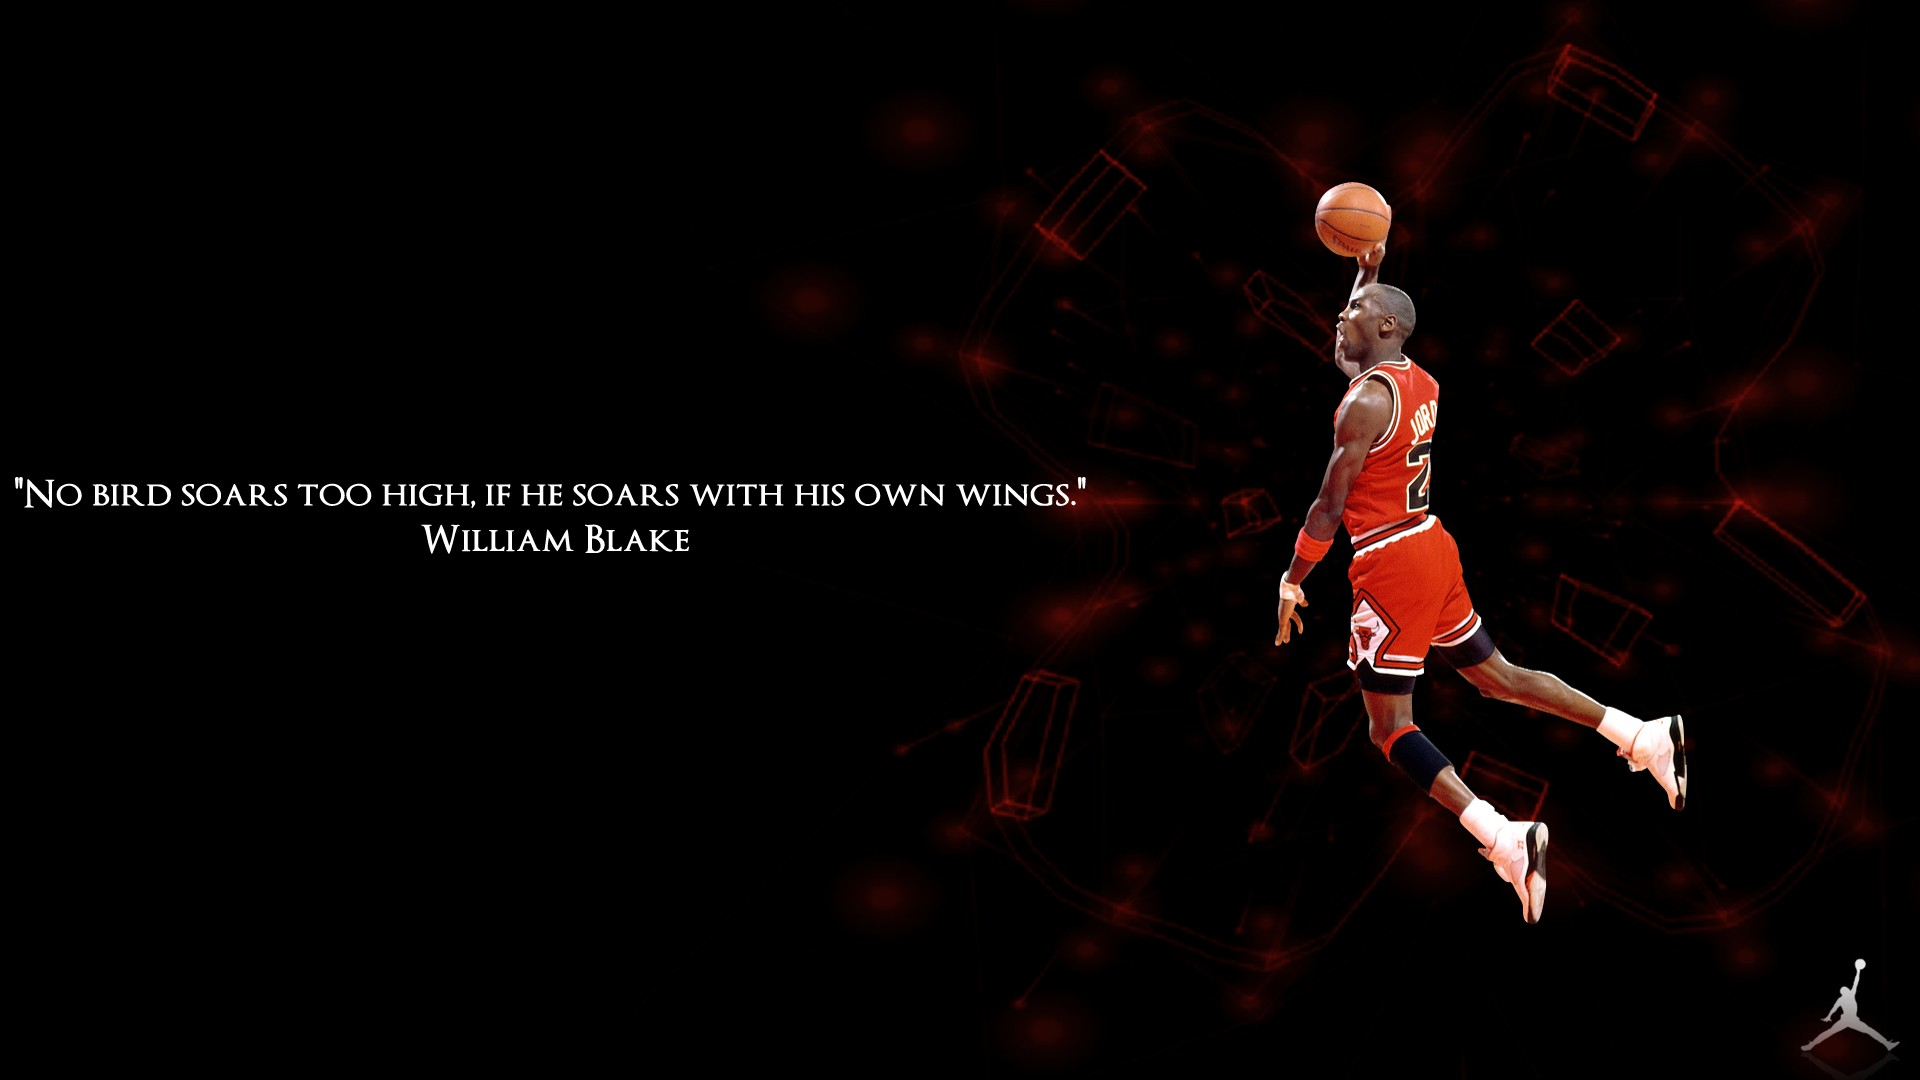 michael jordan wallpaper quotes 2